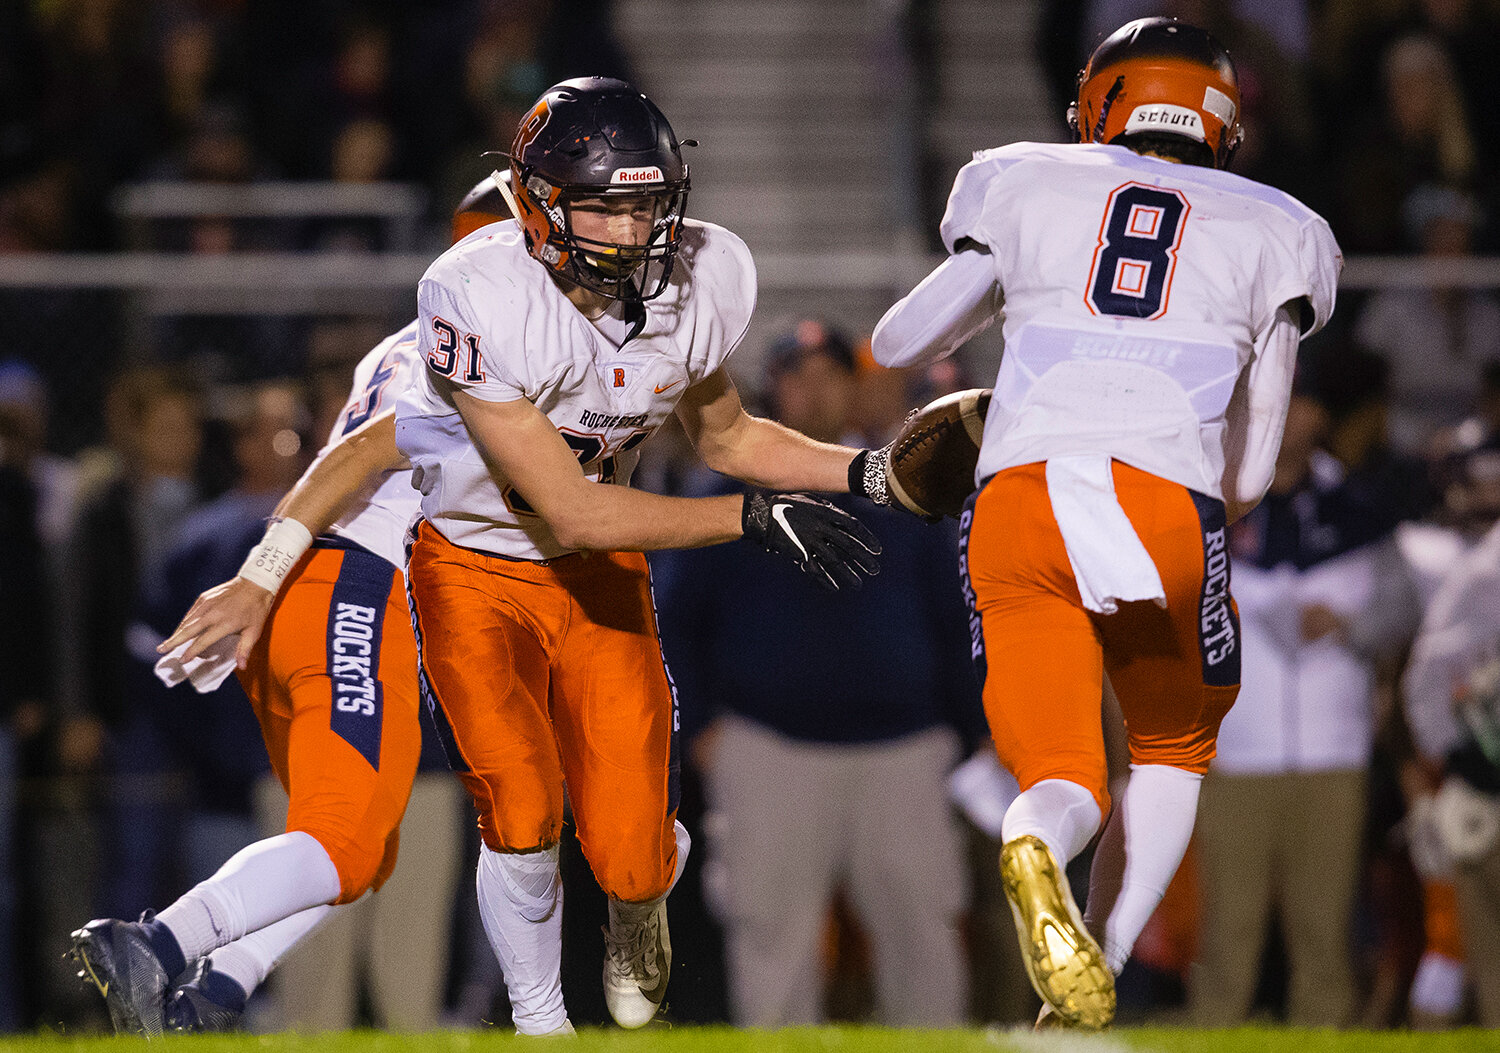 Rochester's Jacob DuRocher (31)  hands off to Rochester's Hank Beatty (8)  at Glenwood High School Friday, Oct. 25, 2019. [Ted Schurter/The State Journal-Register]